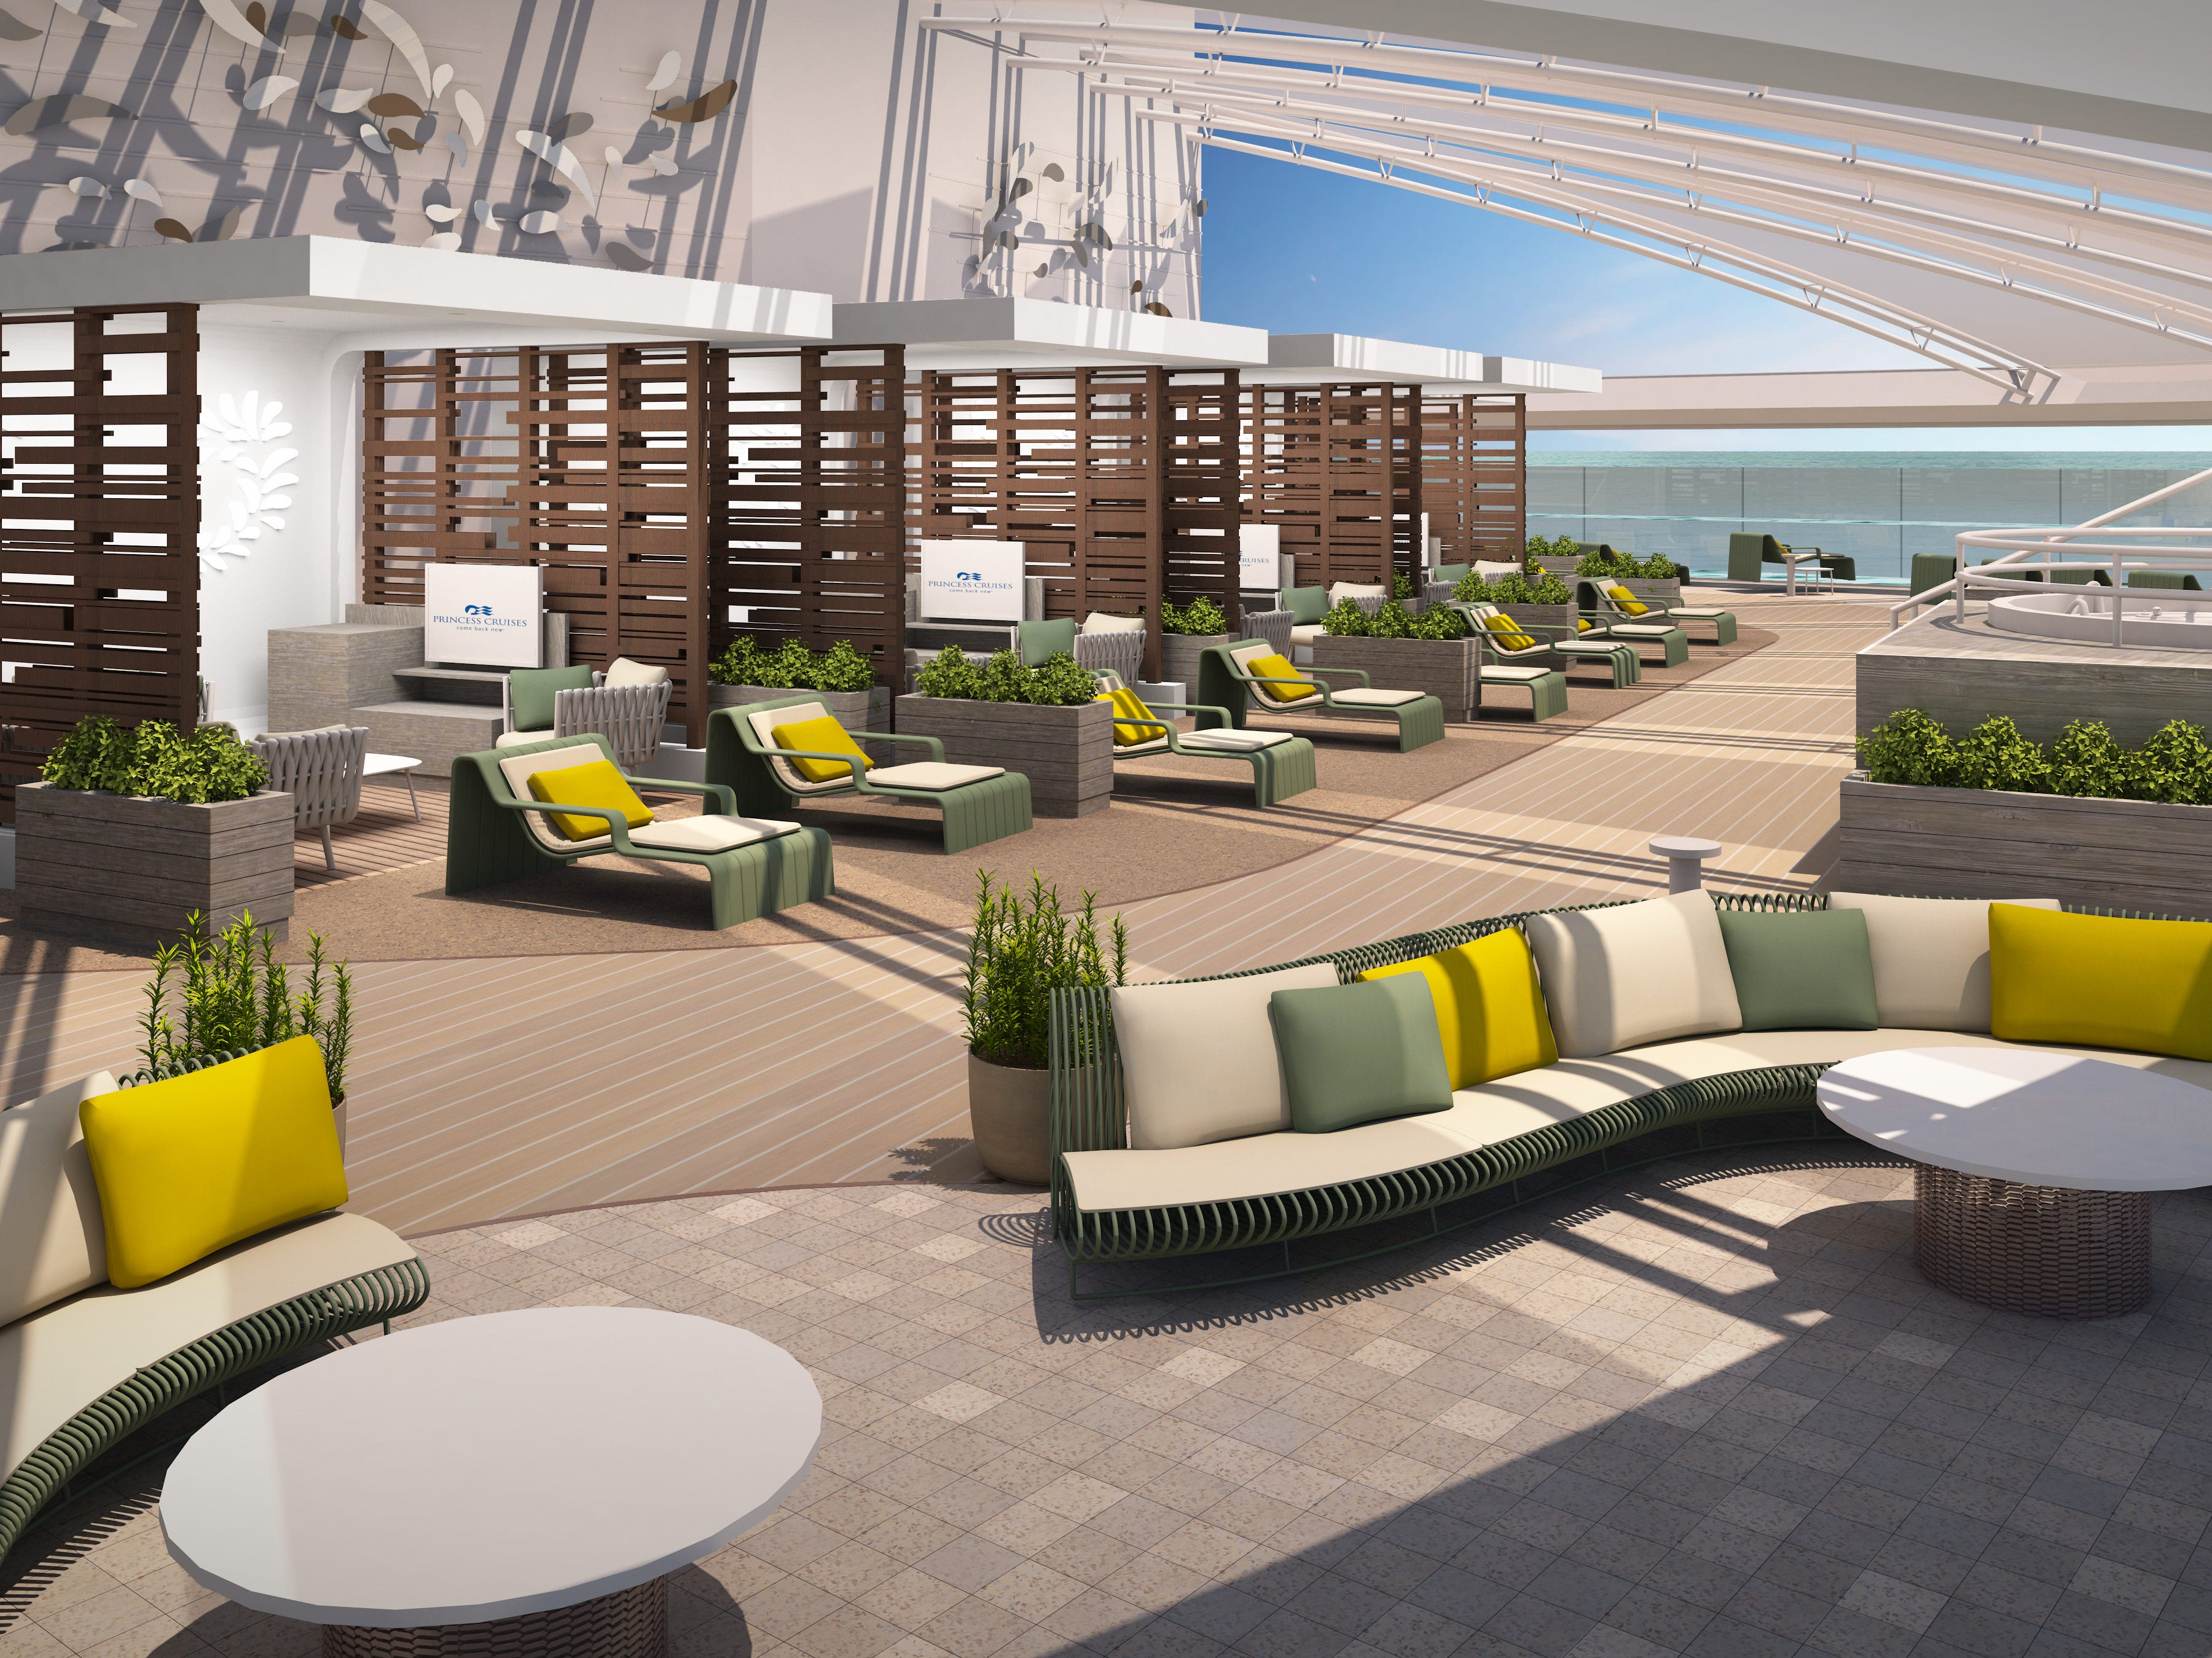 An artist's drawing of the adults-only Retreat planned for Sky Princess.